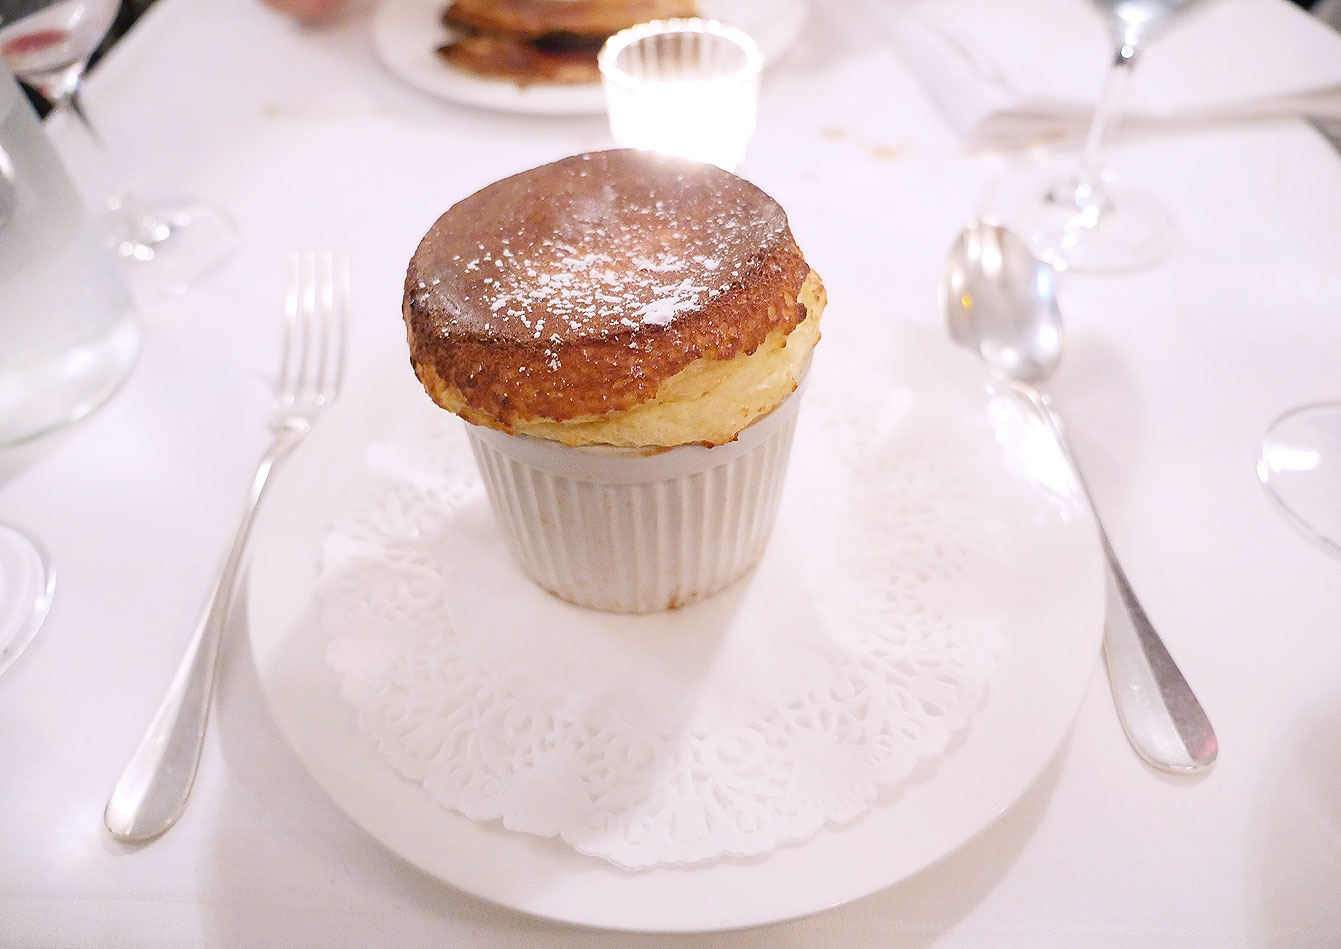 Soufflé tradition au Grand Marnier 'cuit minute'